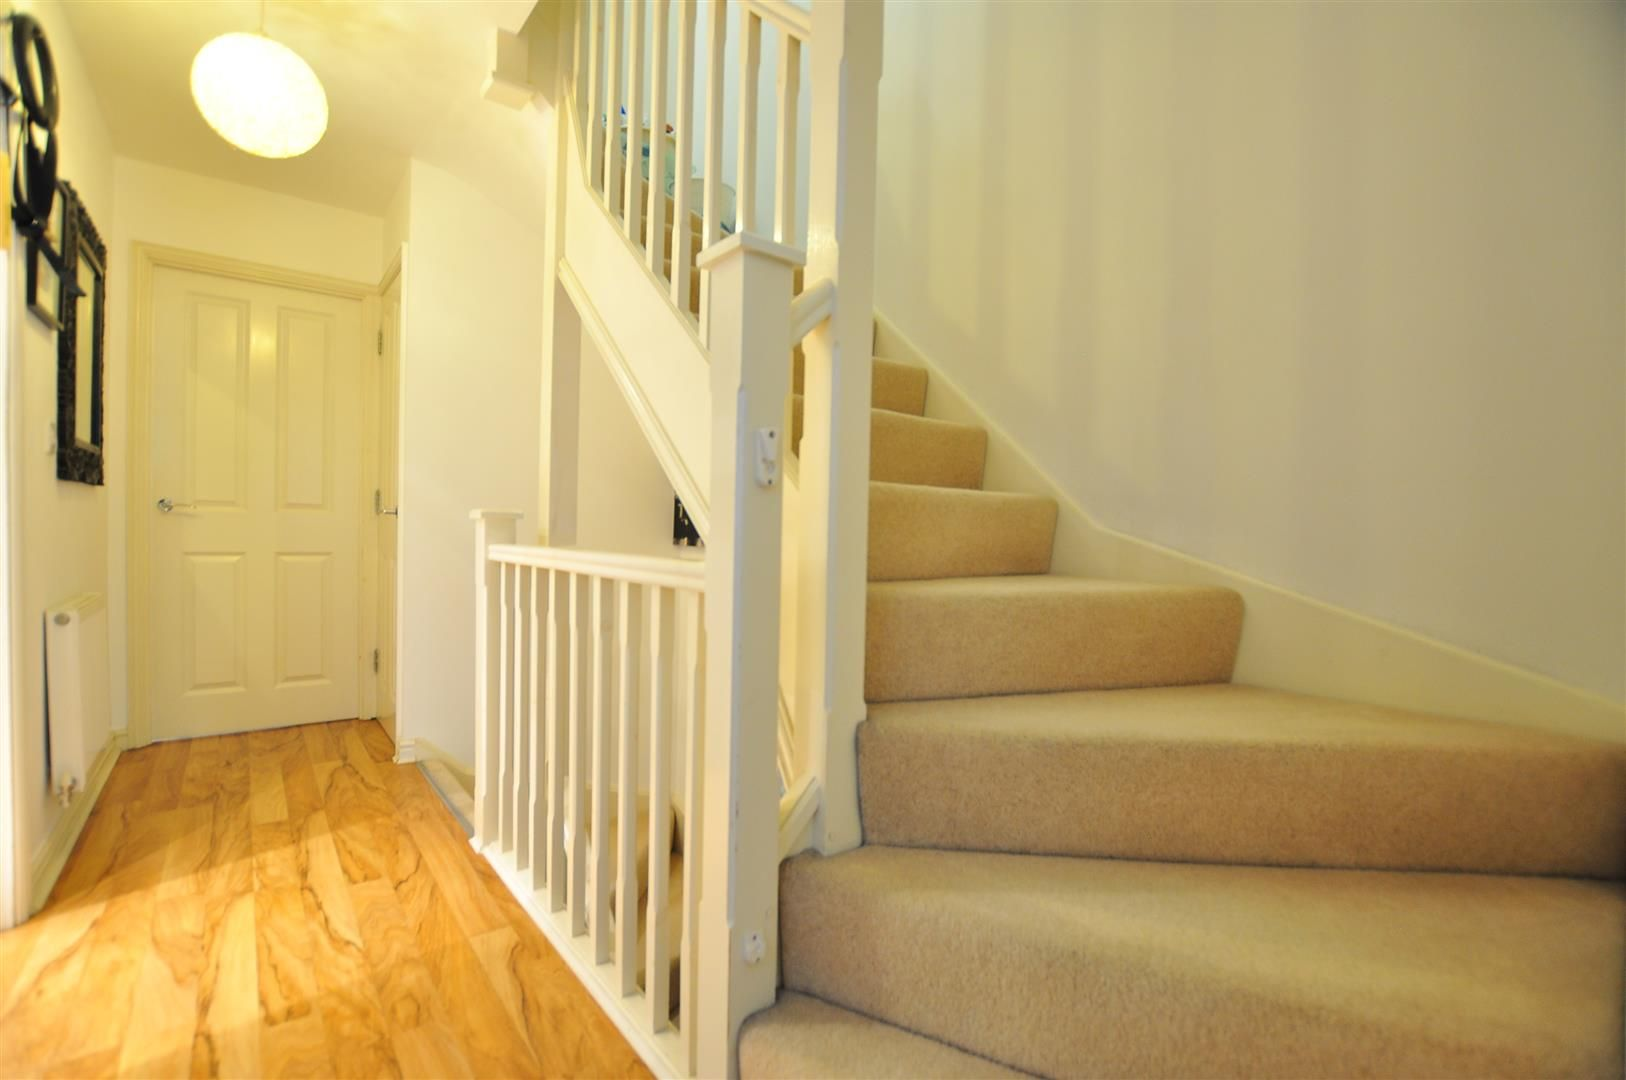 4 bed end-of-terrace for sale 13